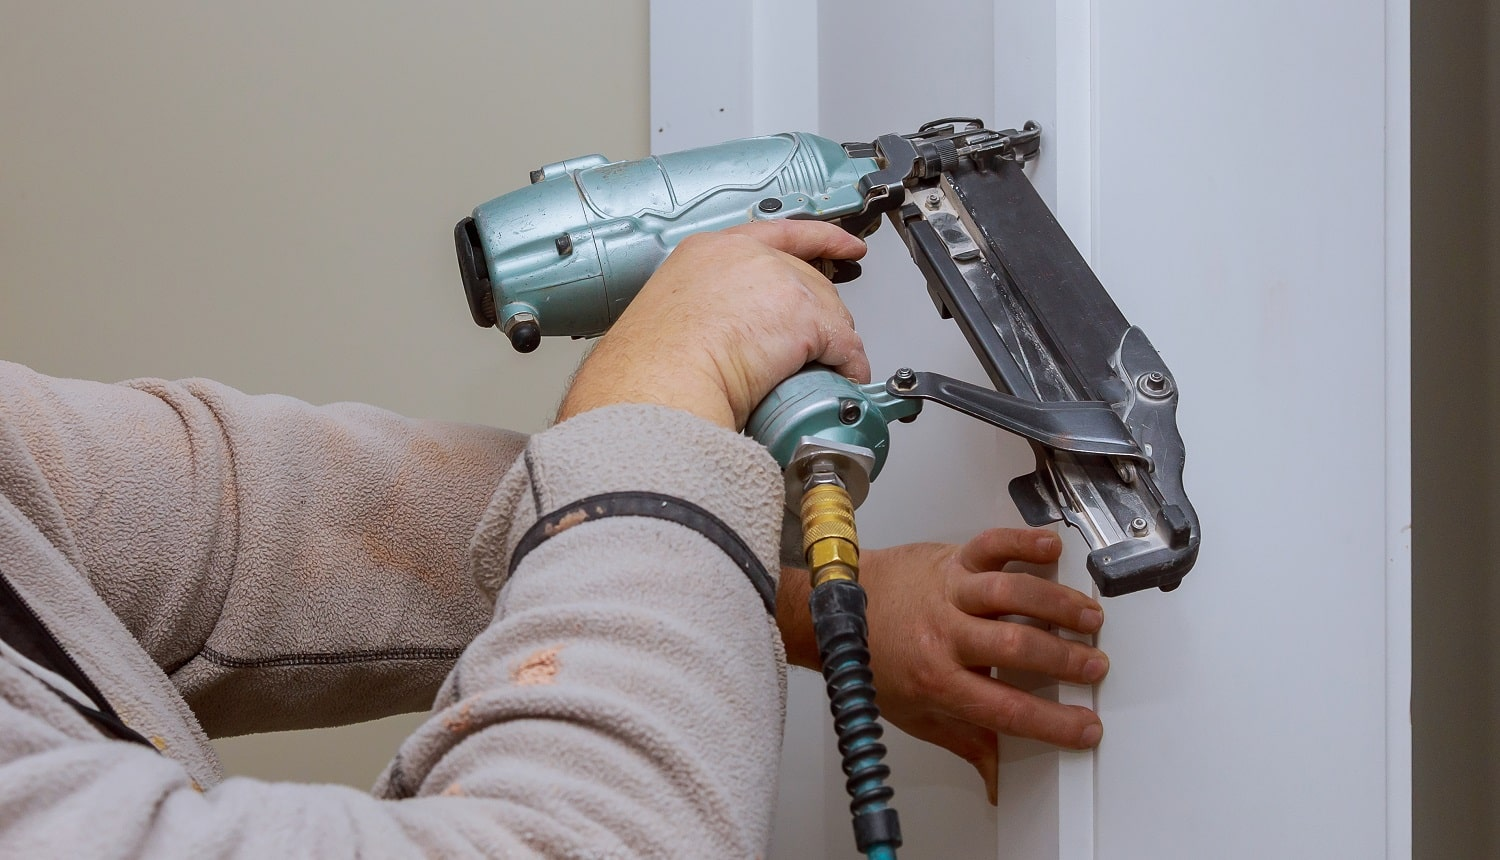 Construction handyman is working on renovation of apartment using air nail gun